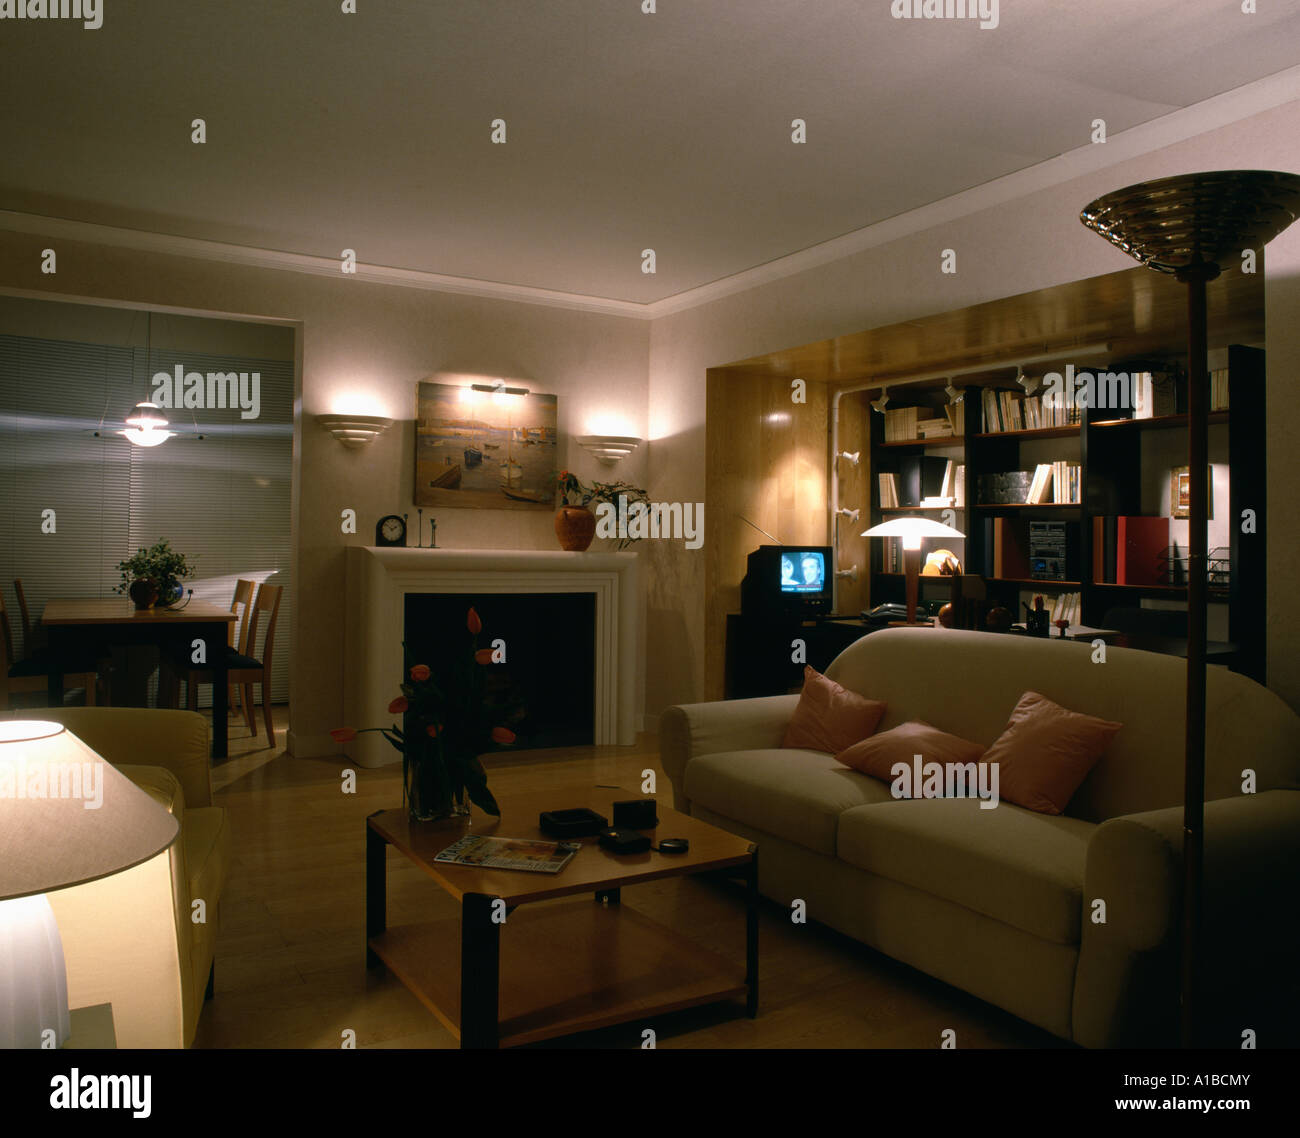 Lamps And Uplighters Above Fireplace In Modern Living Room